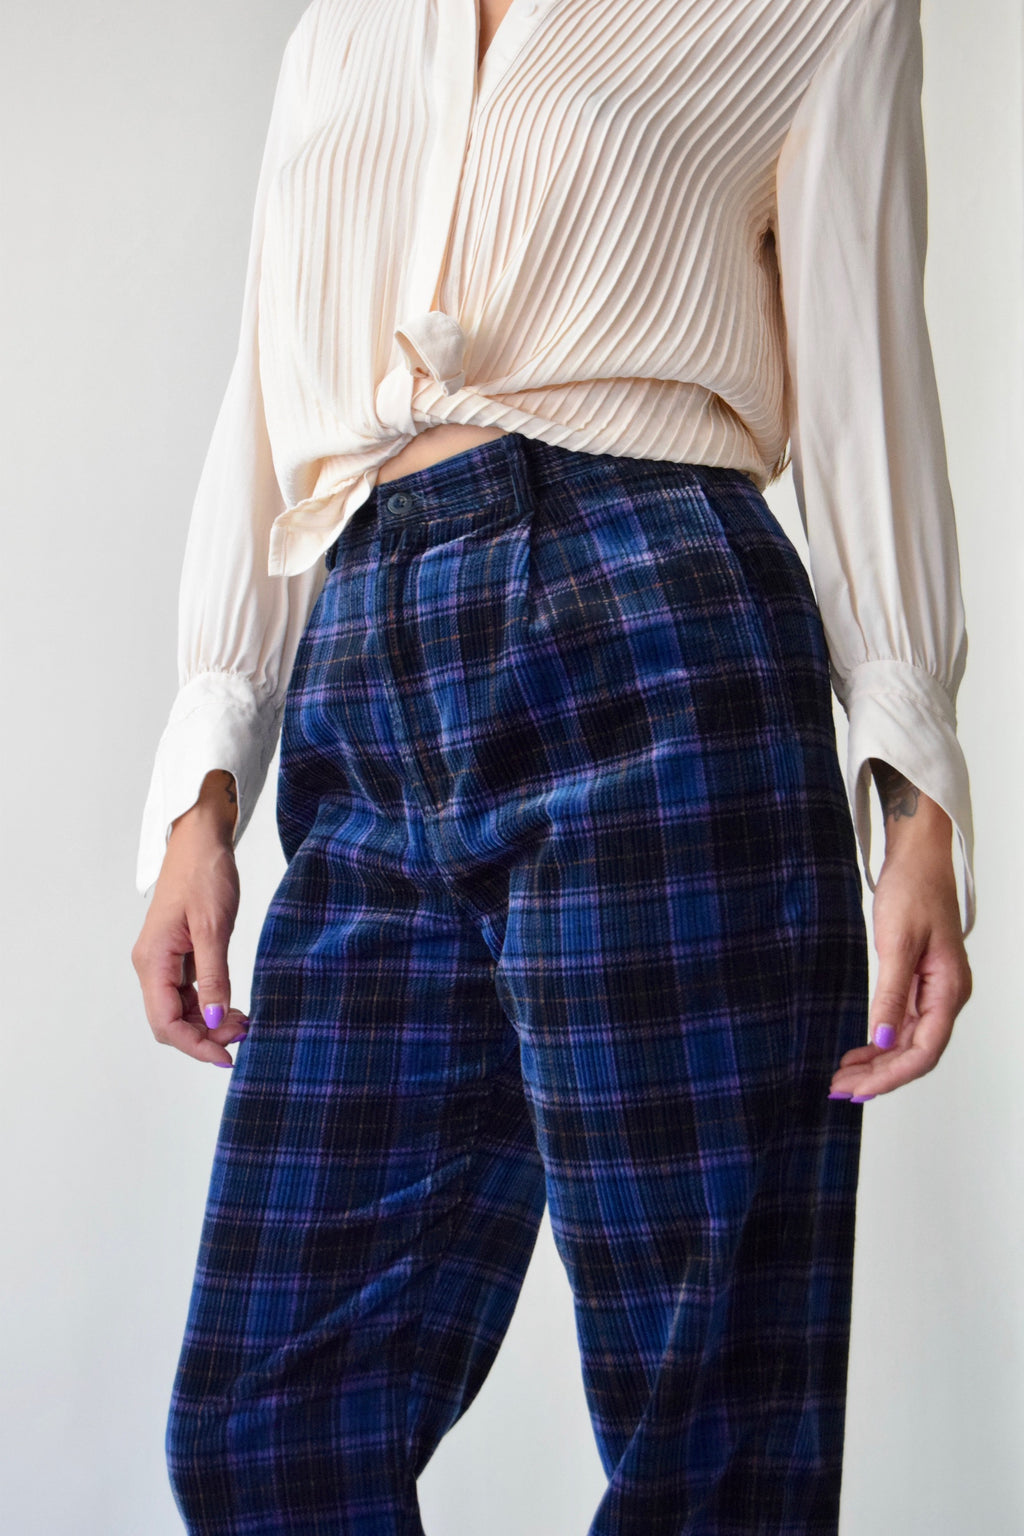 Violet and Indigo Plaid Corduroy Trousers